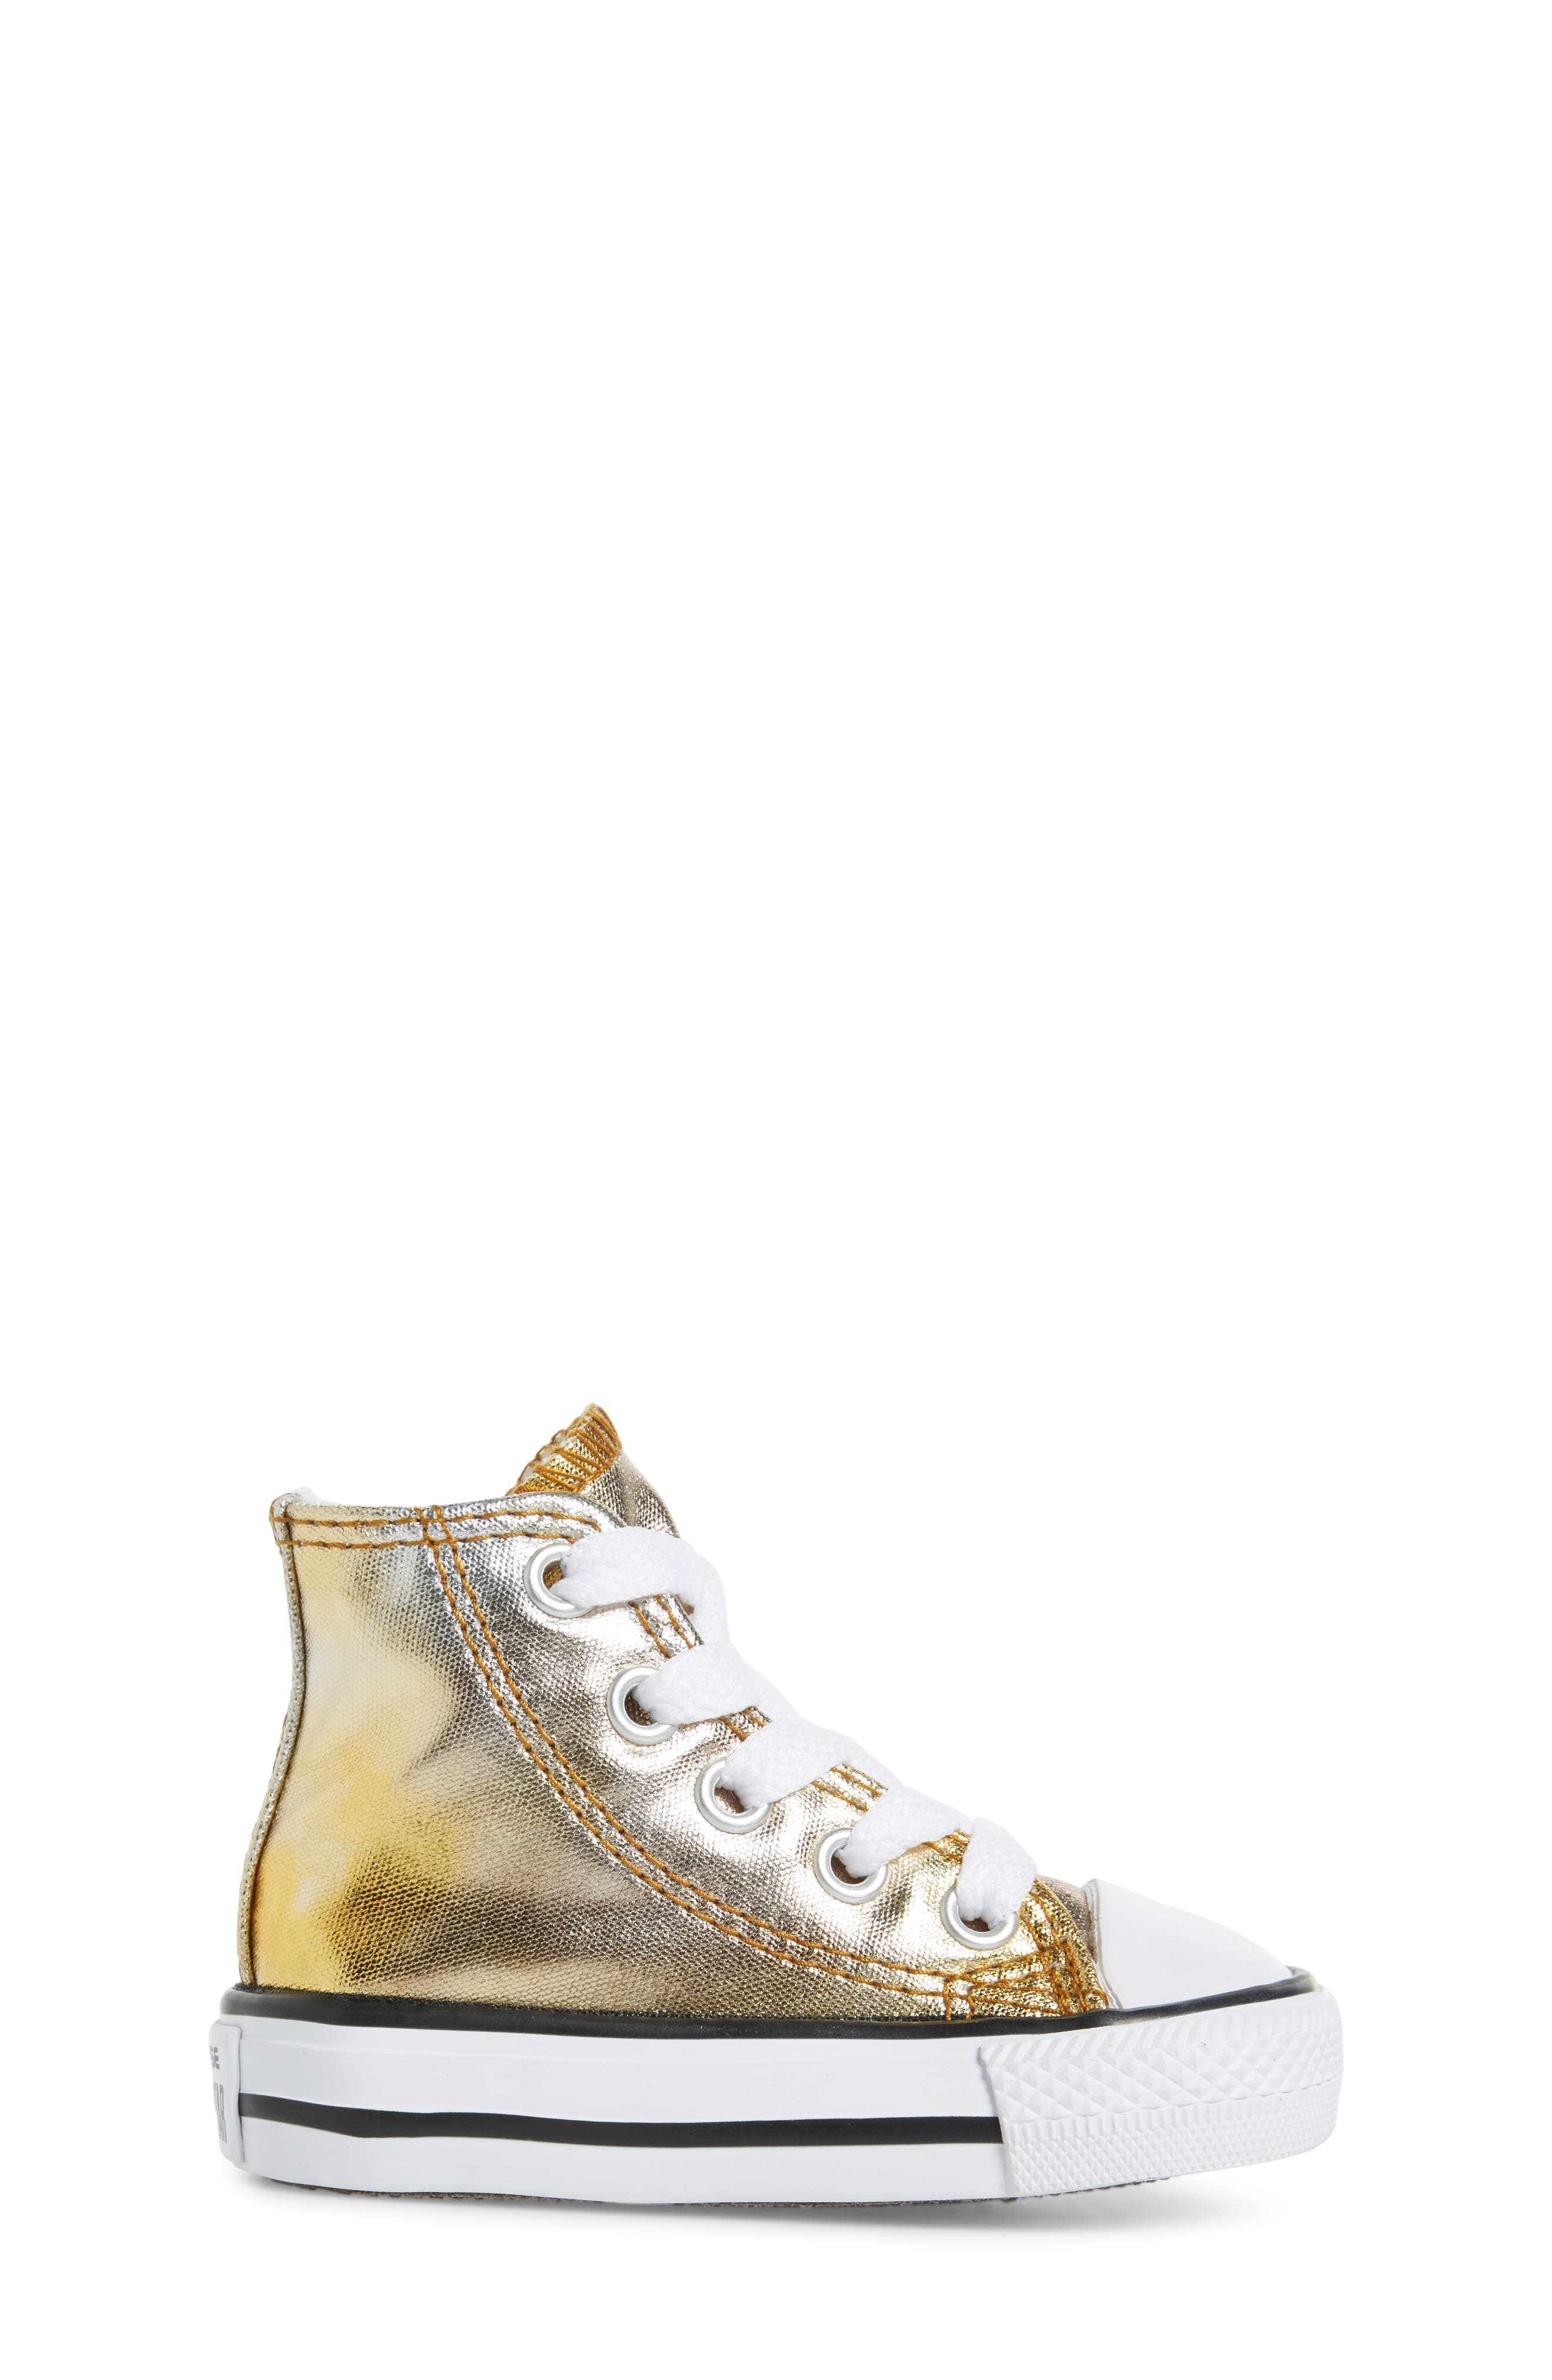 Chuck Taylor<sup>®</sup> All Star<sup>®</sup> Metallic High Top Sneaker,                             Alternate thumbnail 6, color,